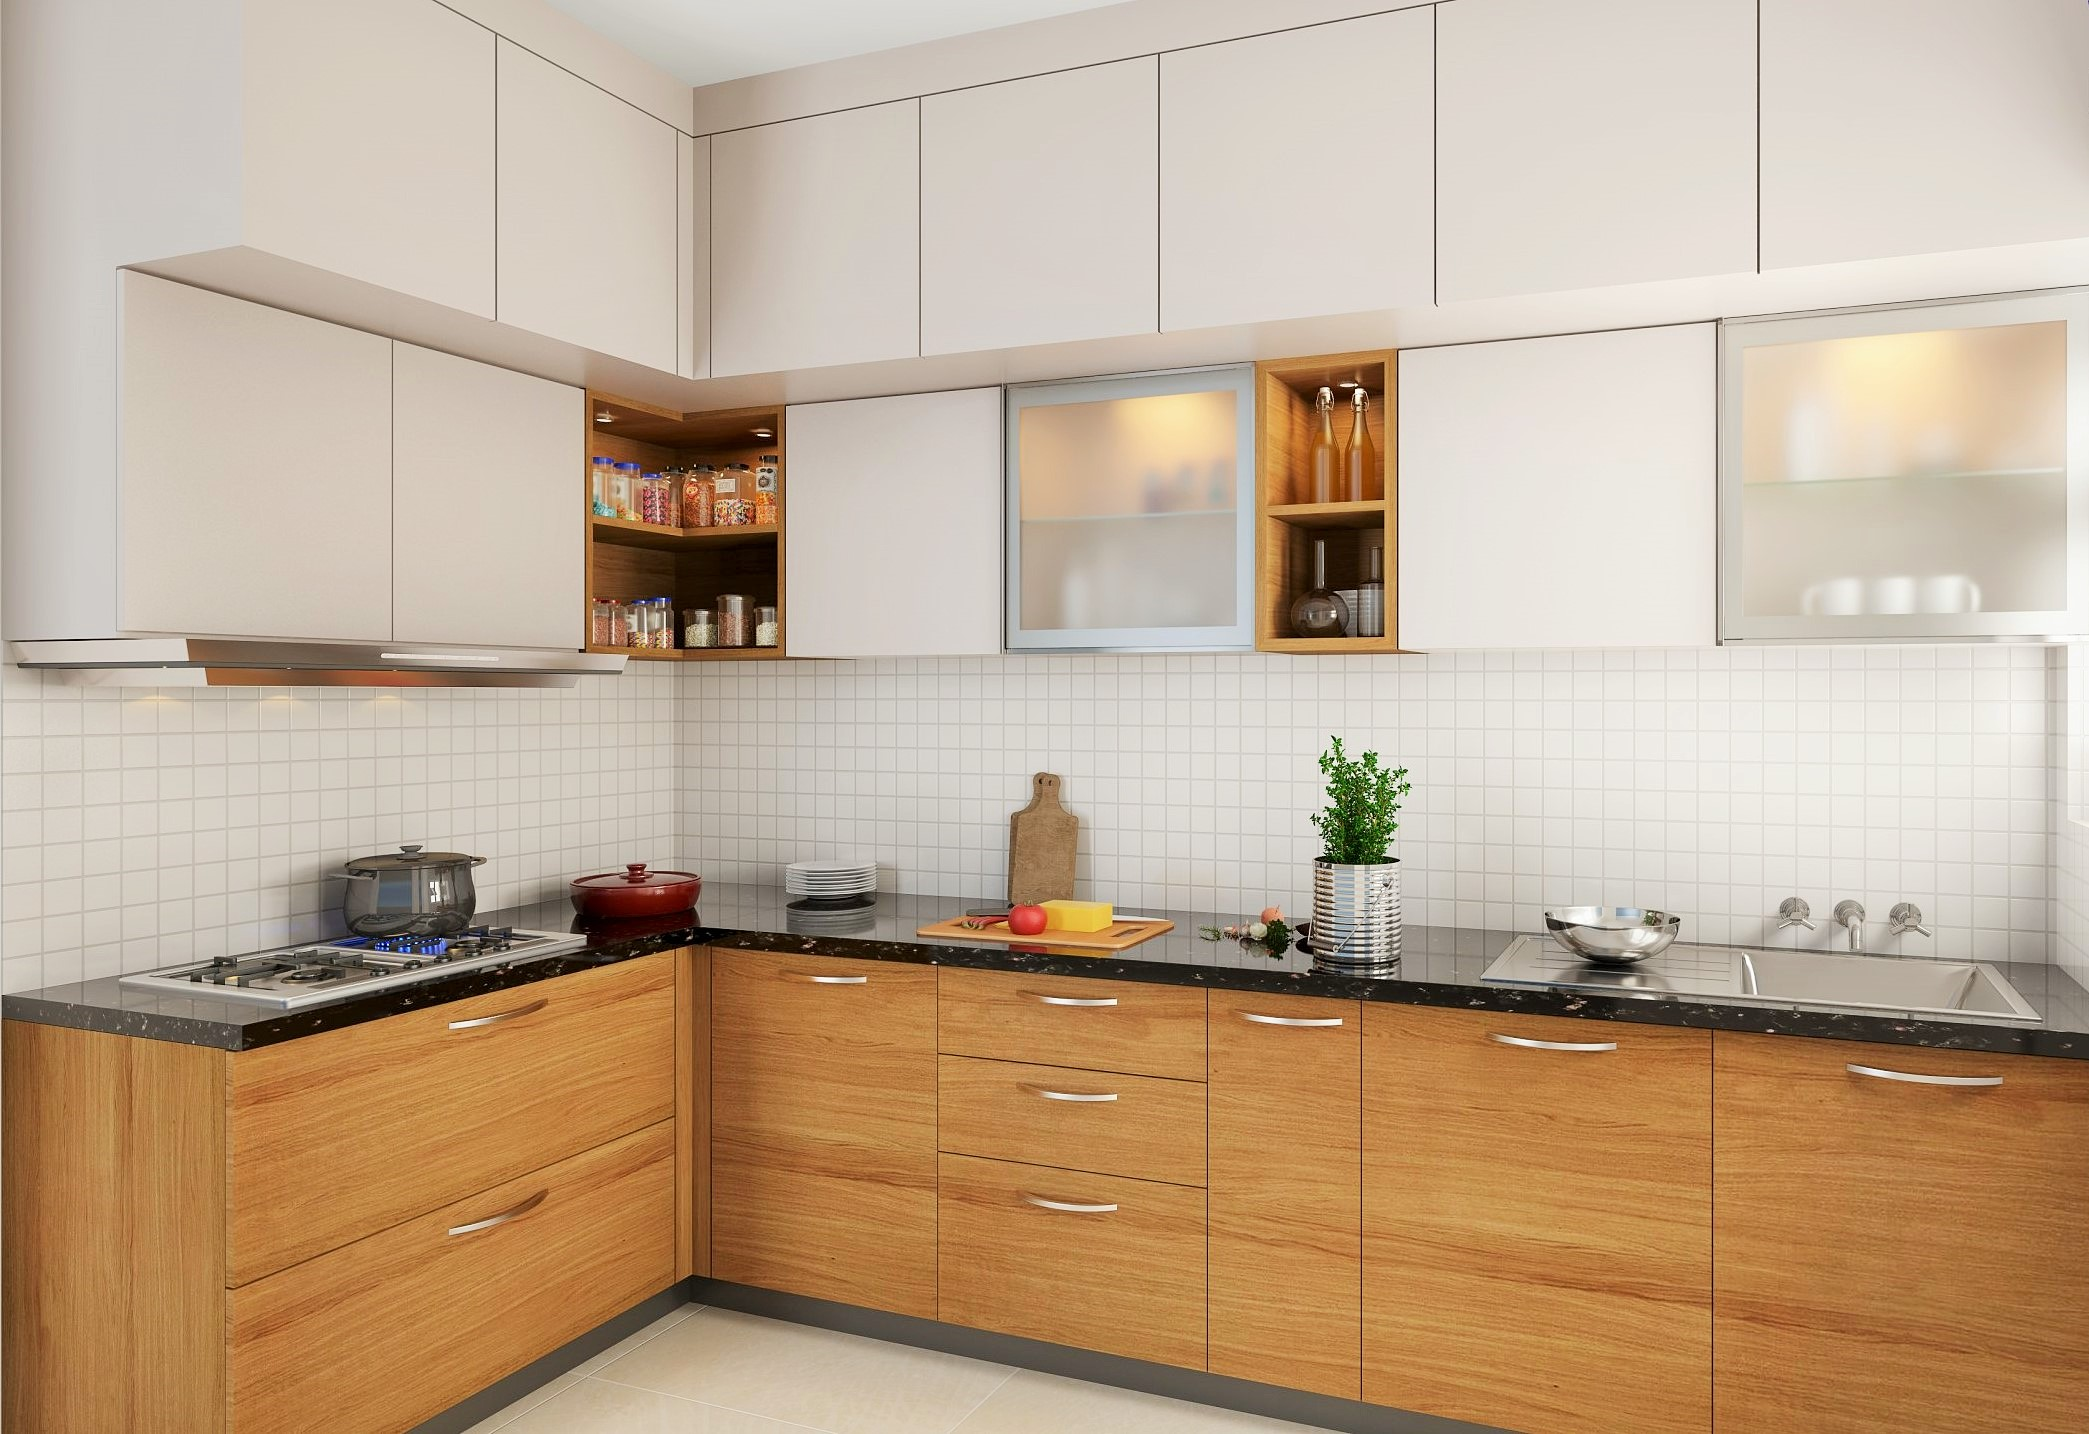 Simple & Effective Vastu Tips For a Healthy Kitchen – The Urban Guide